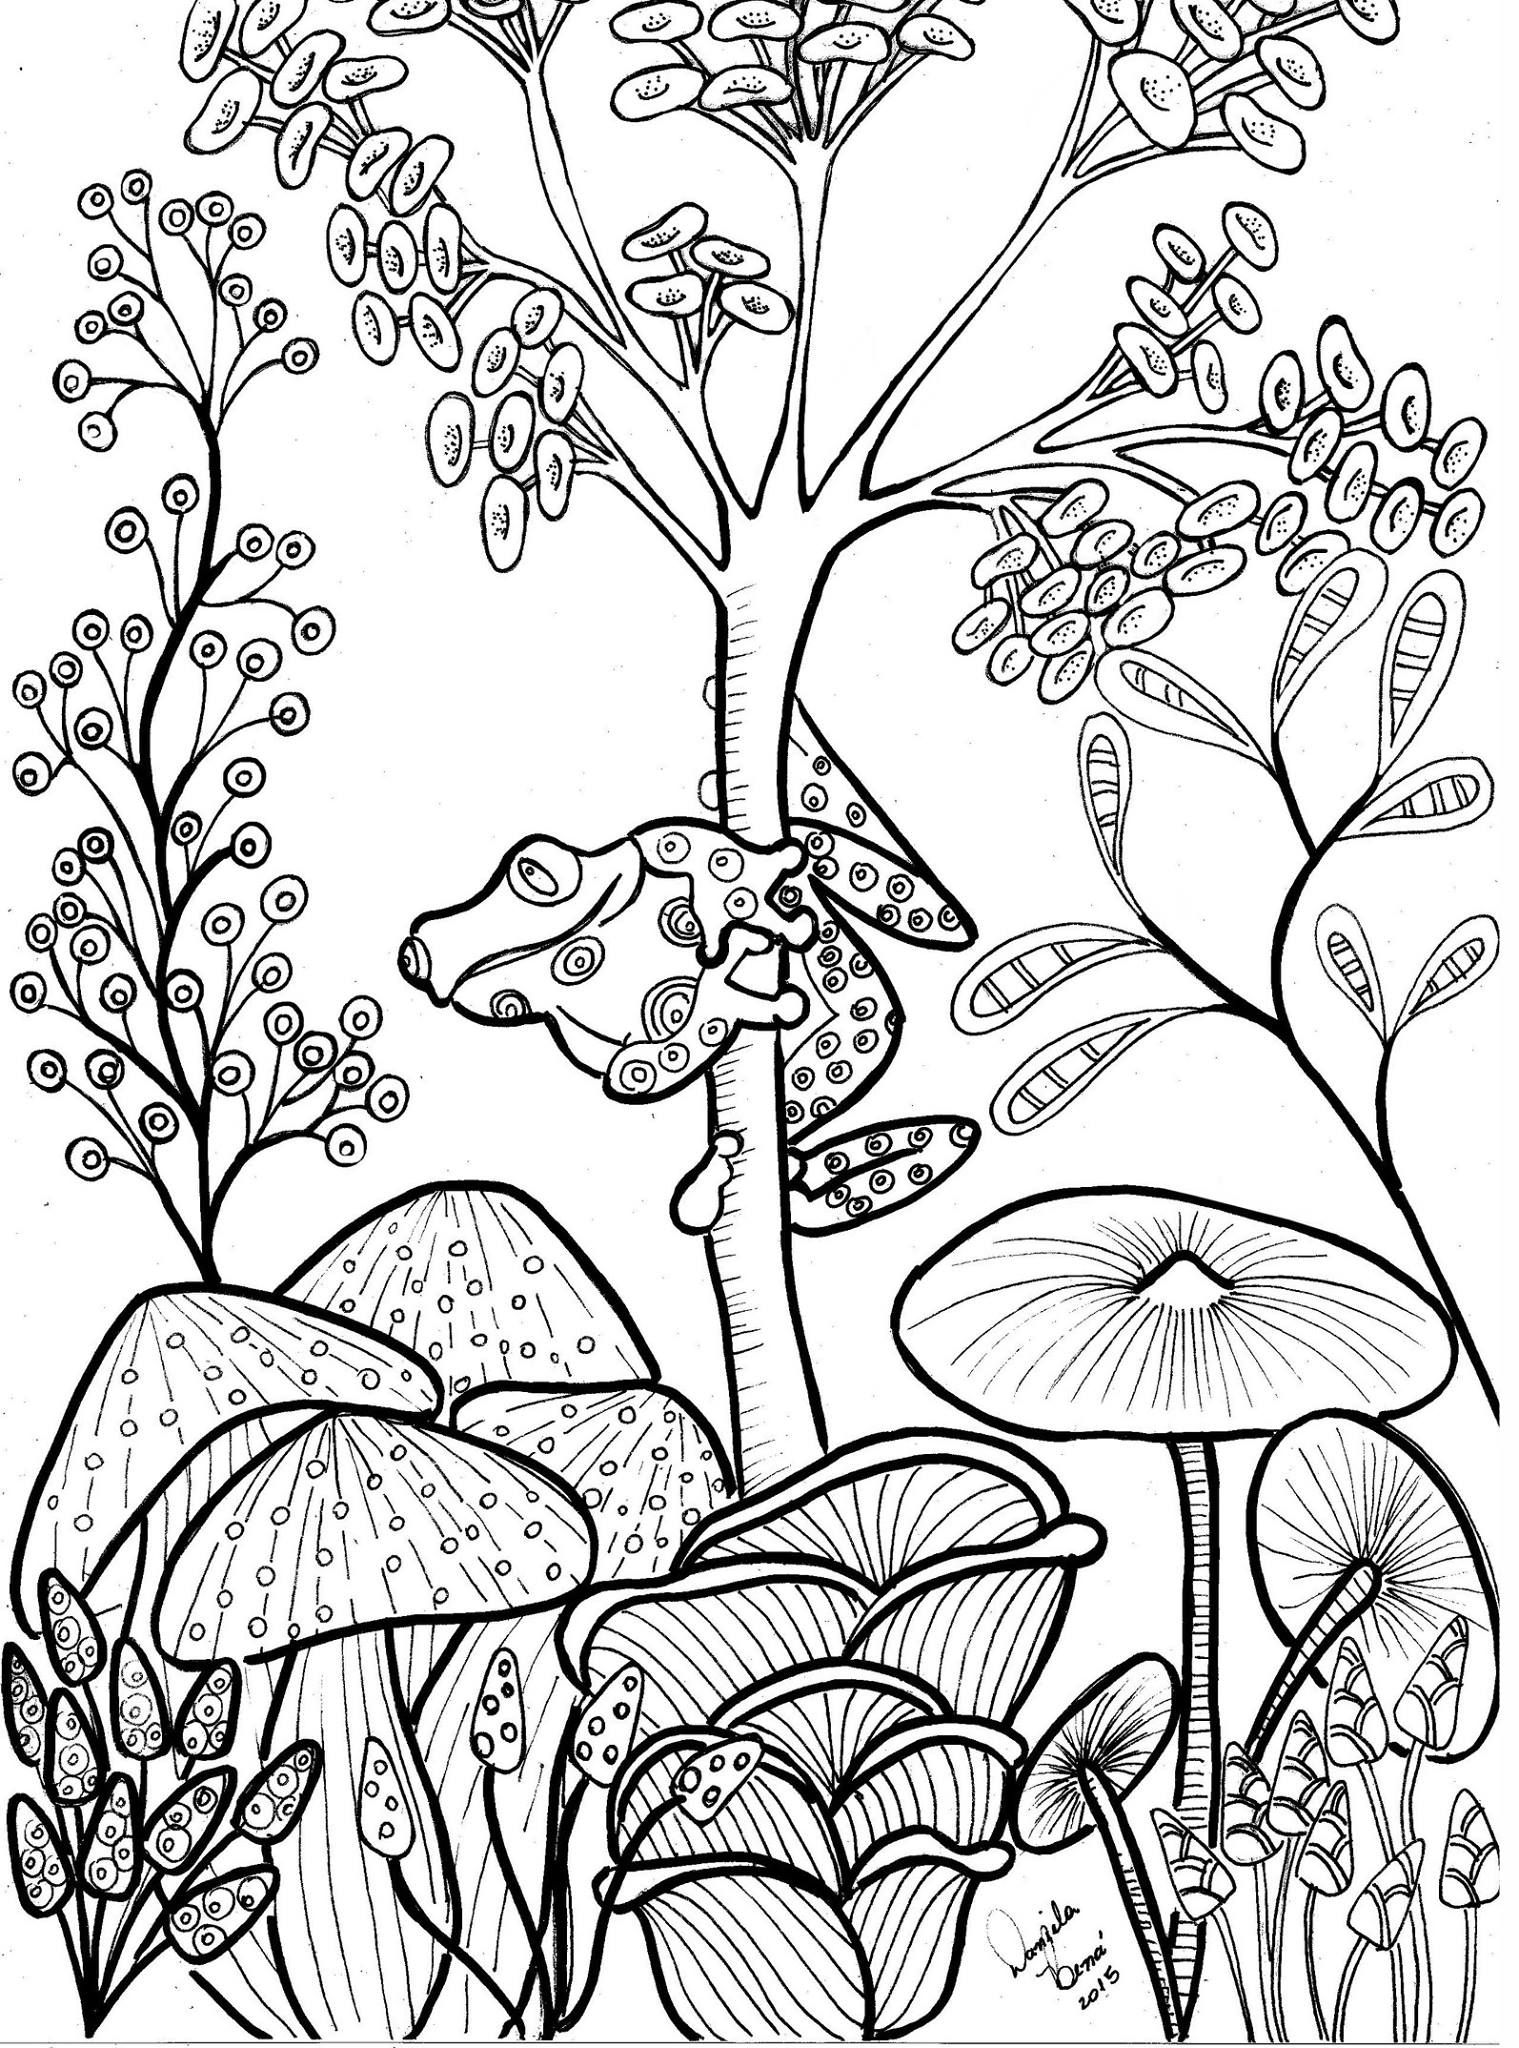 Free coloring pages red eyed tree frog - Cute Tree Frog And Mushrooms Coloring Page